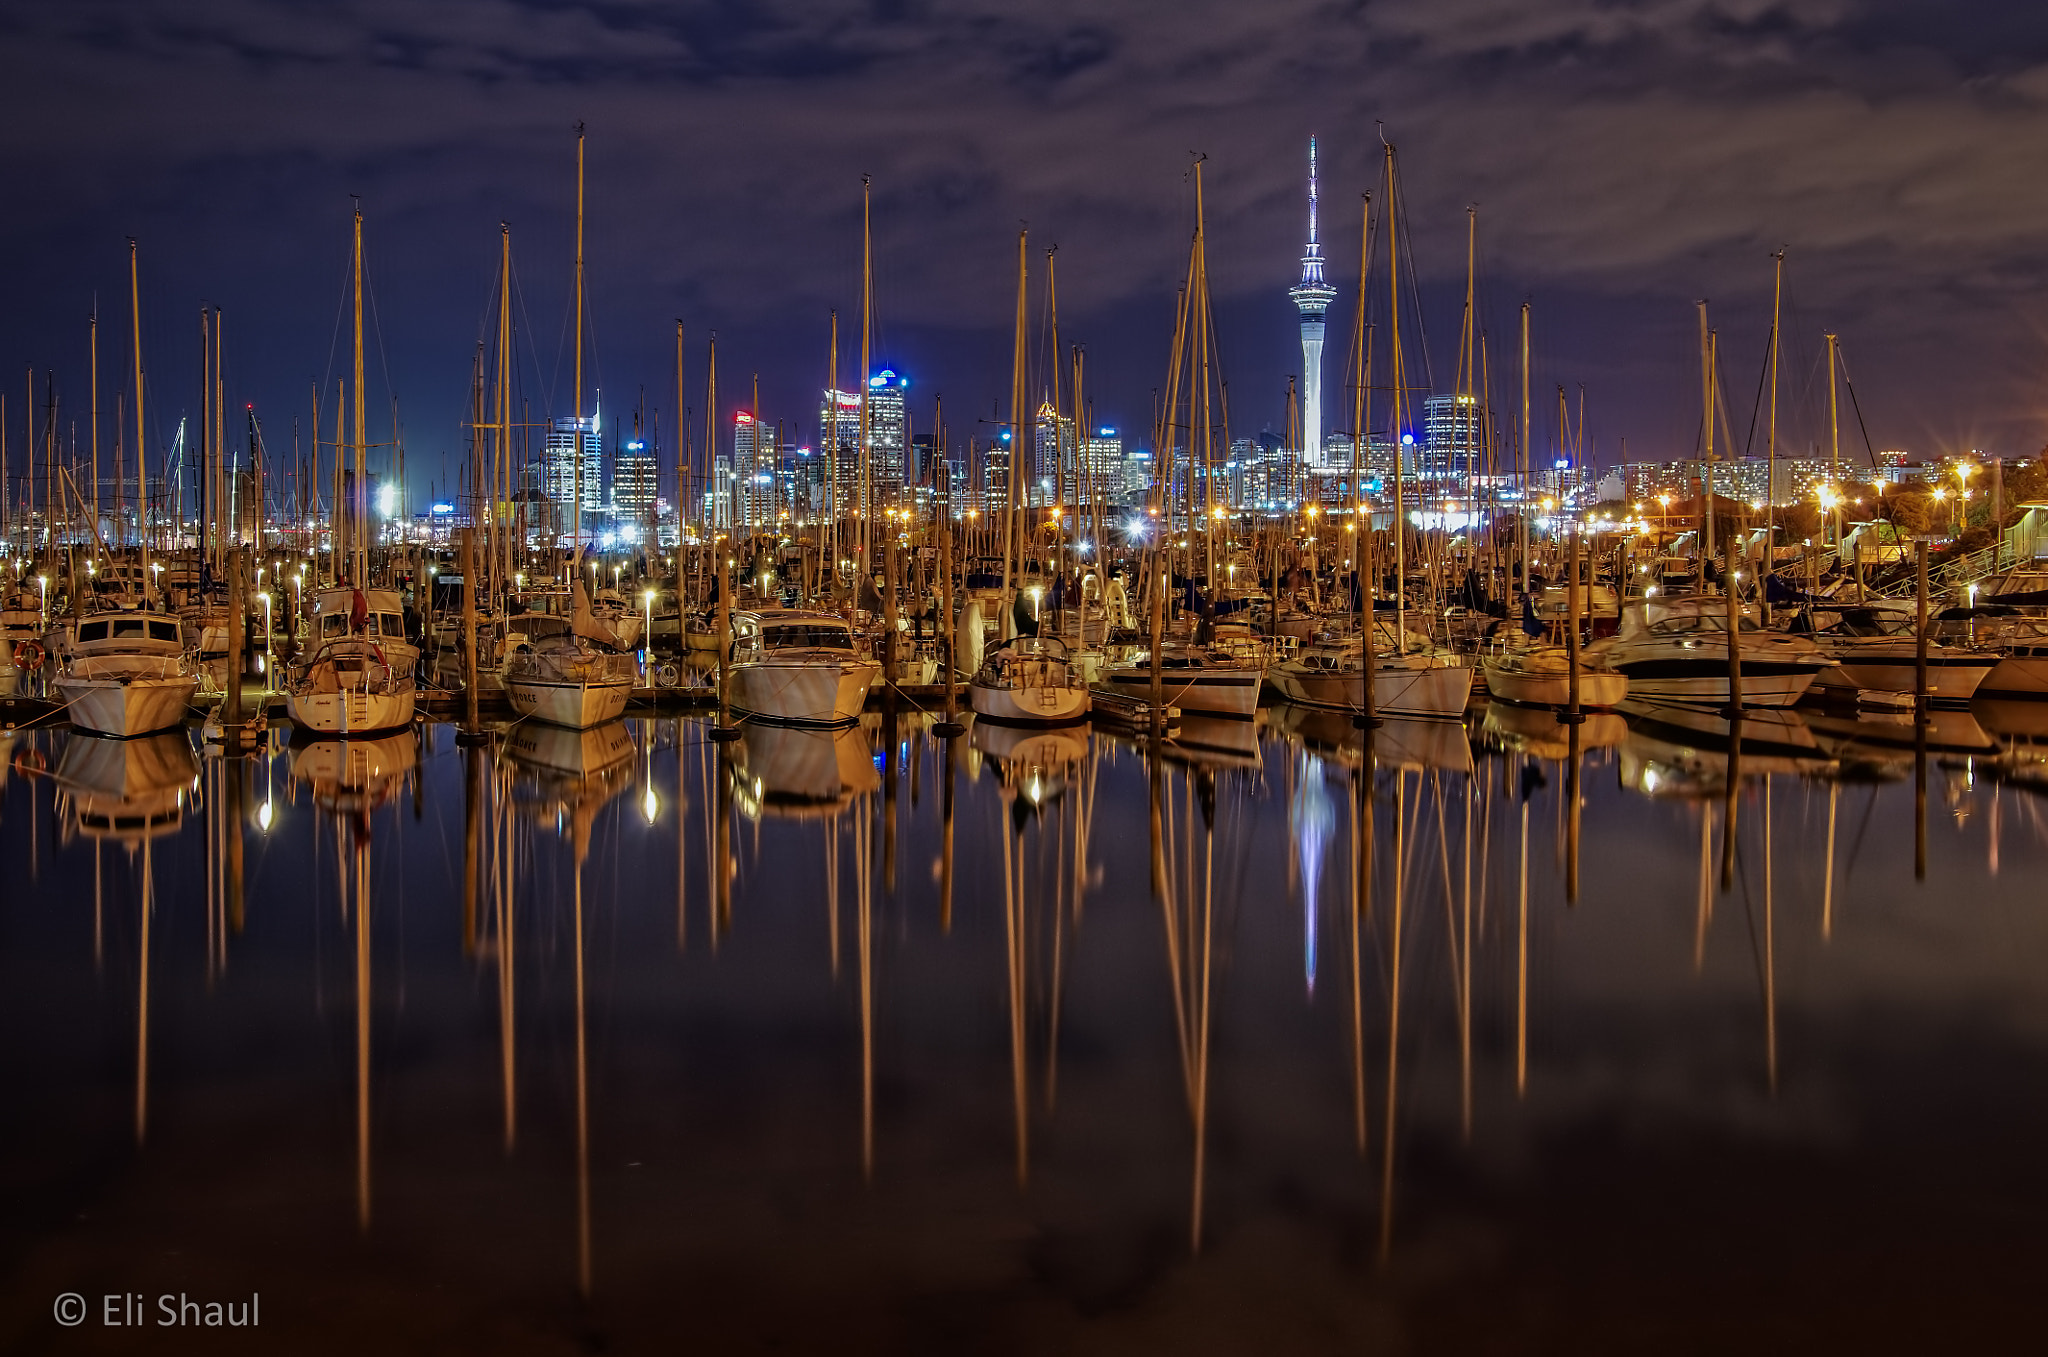 Photograph Mirrored marina by Eli Shaul on 500px